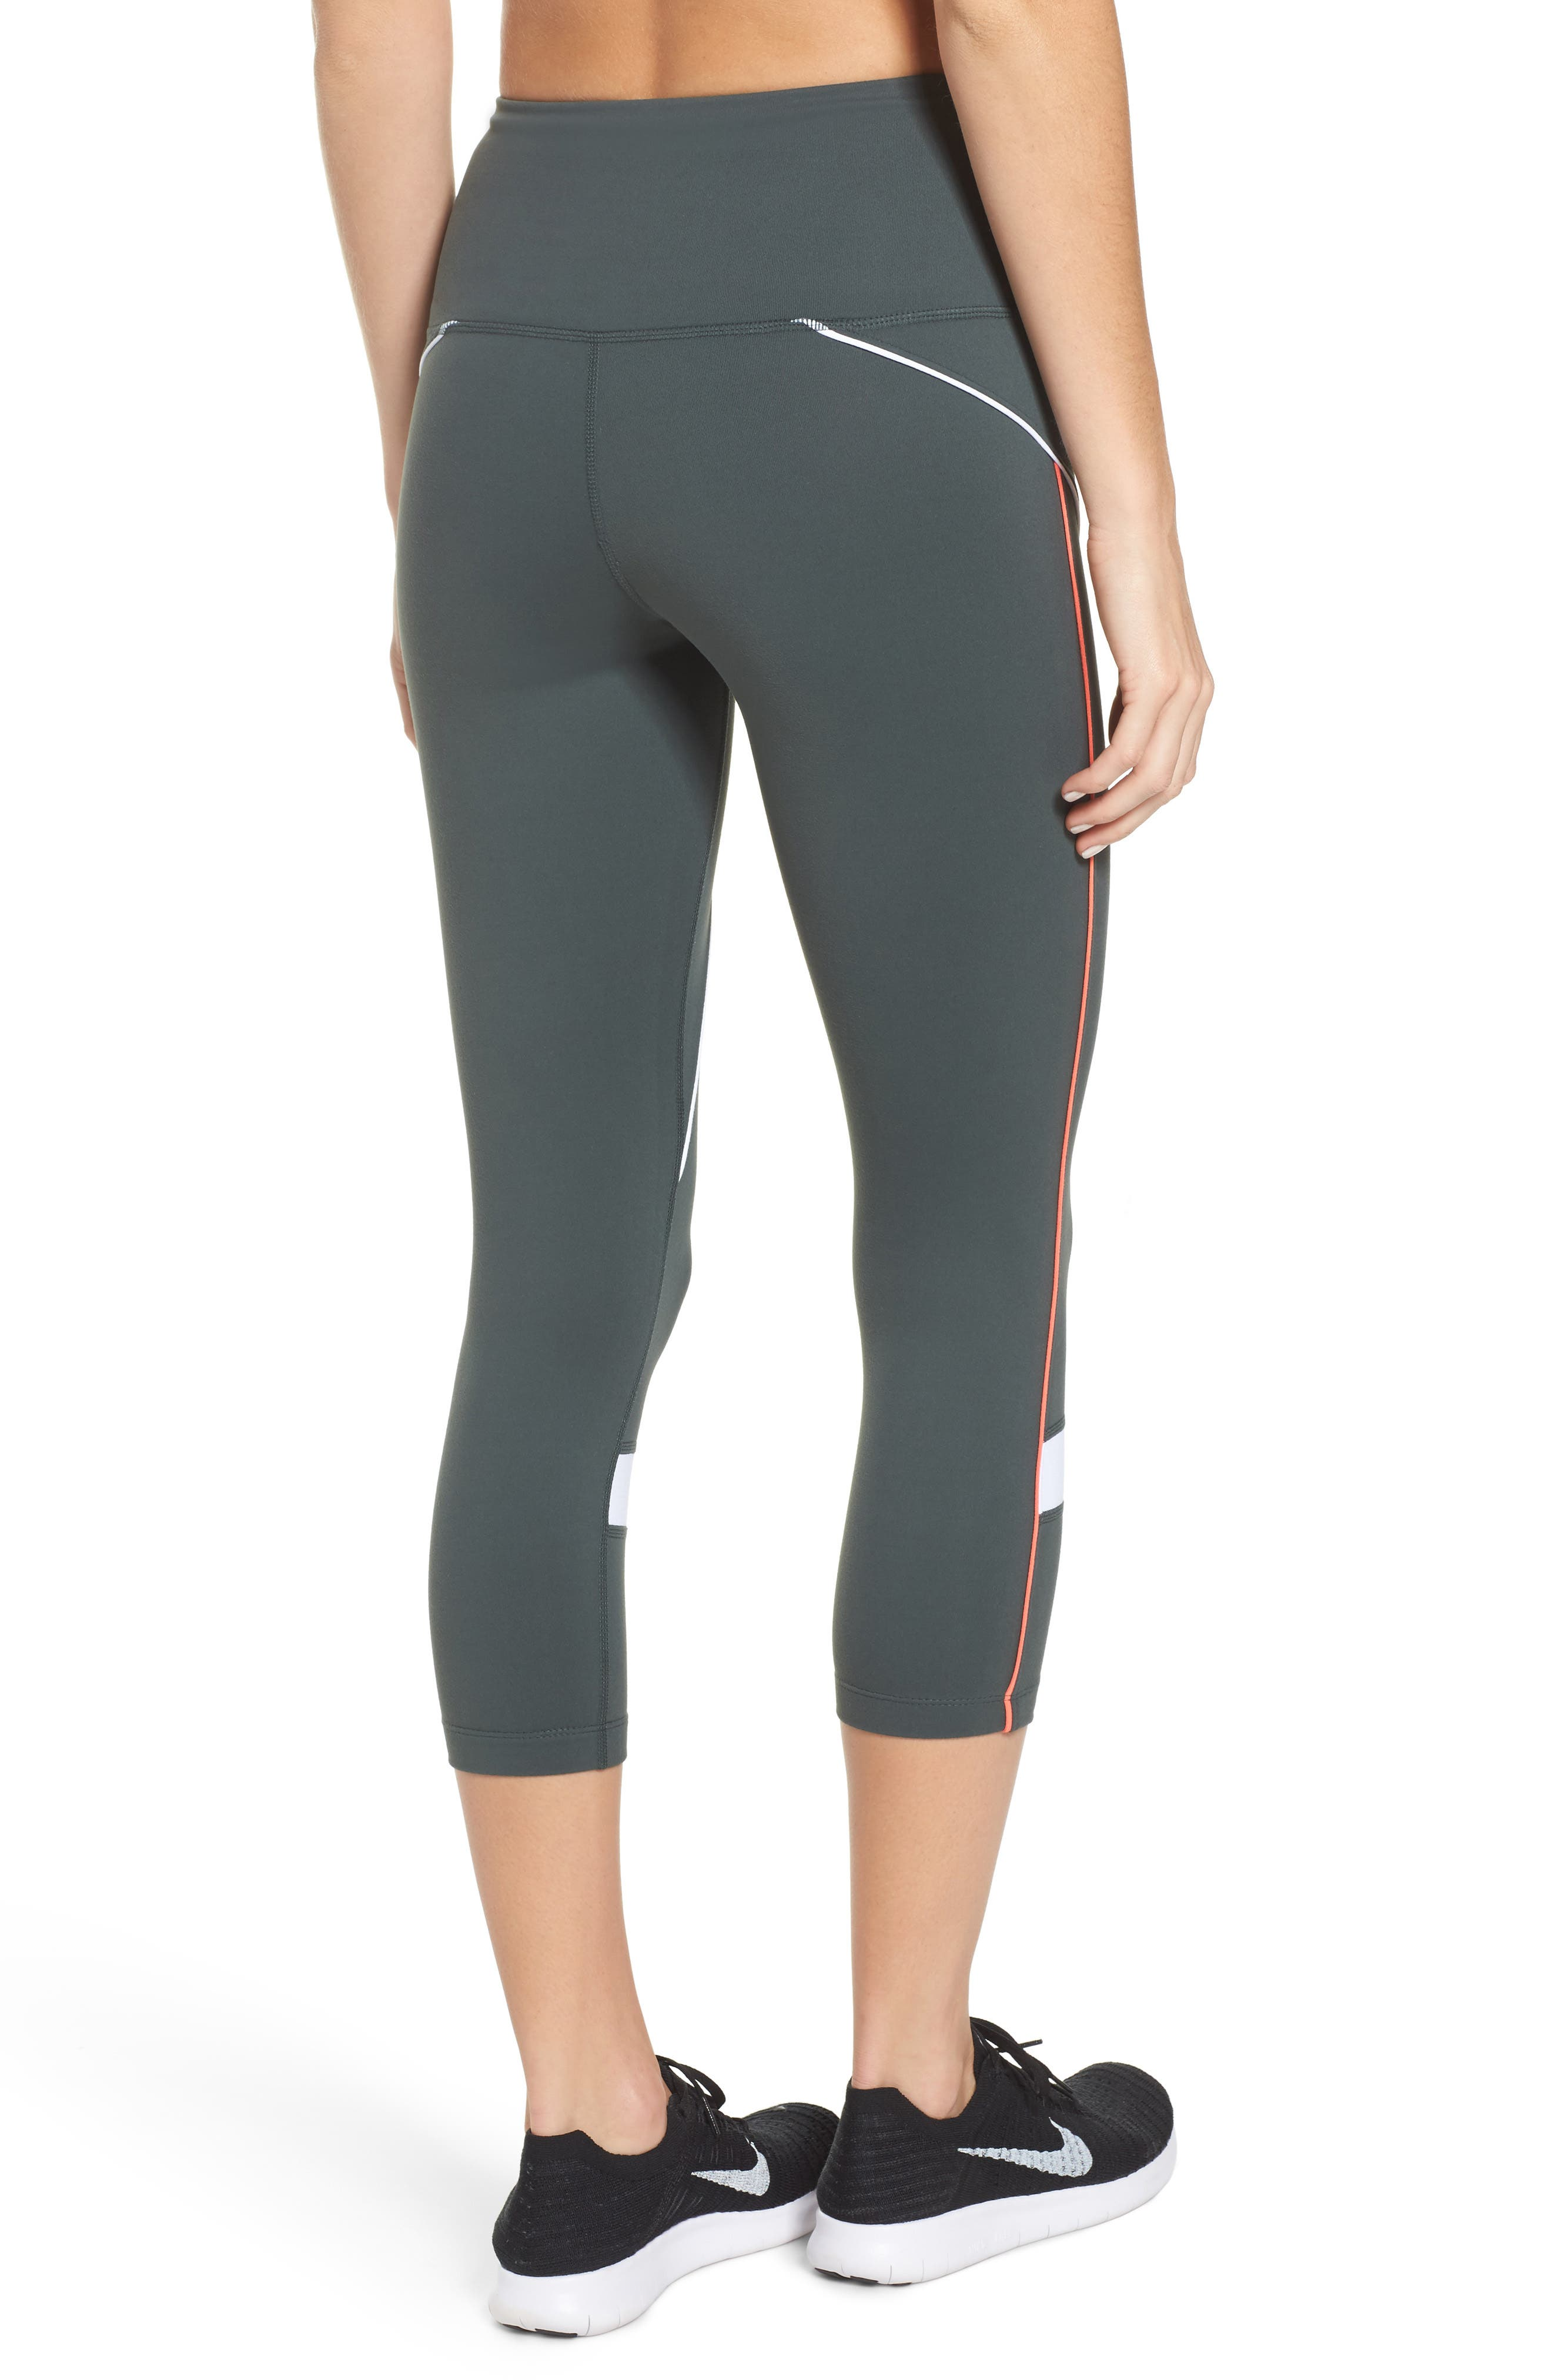 Piper High Waist Crop Leggings,                             Alternate thumbnail 2, color,                             021